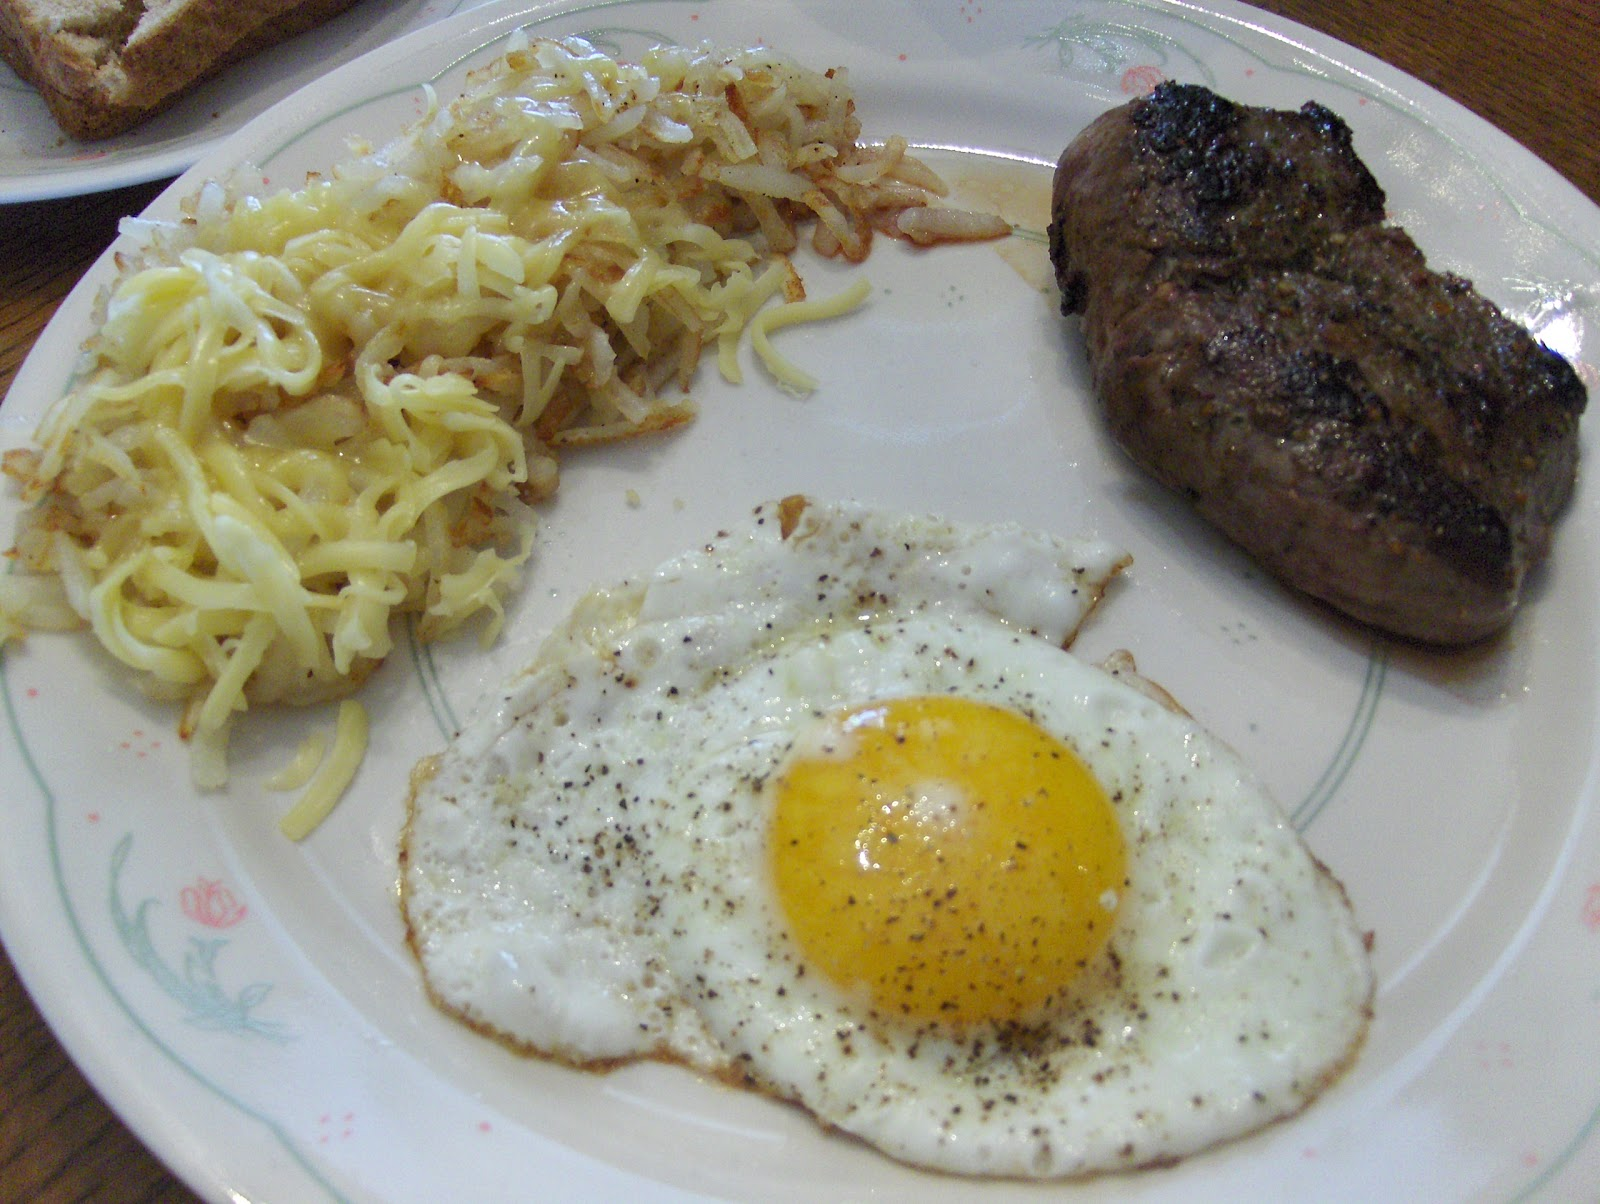 bison+steak+and+eggs+004.JPG#steak%20and%20eggs%20with%20hash%20browns